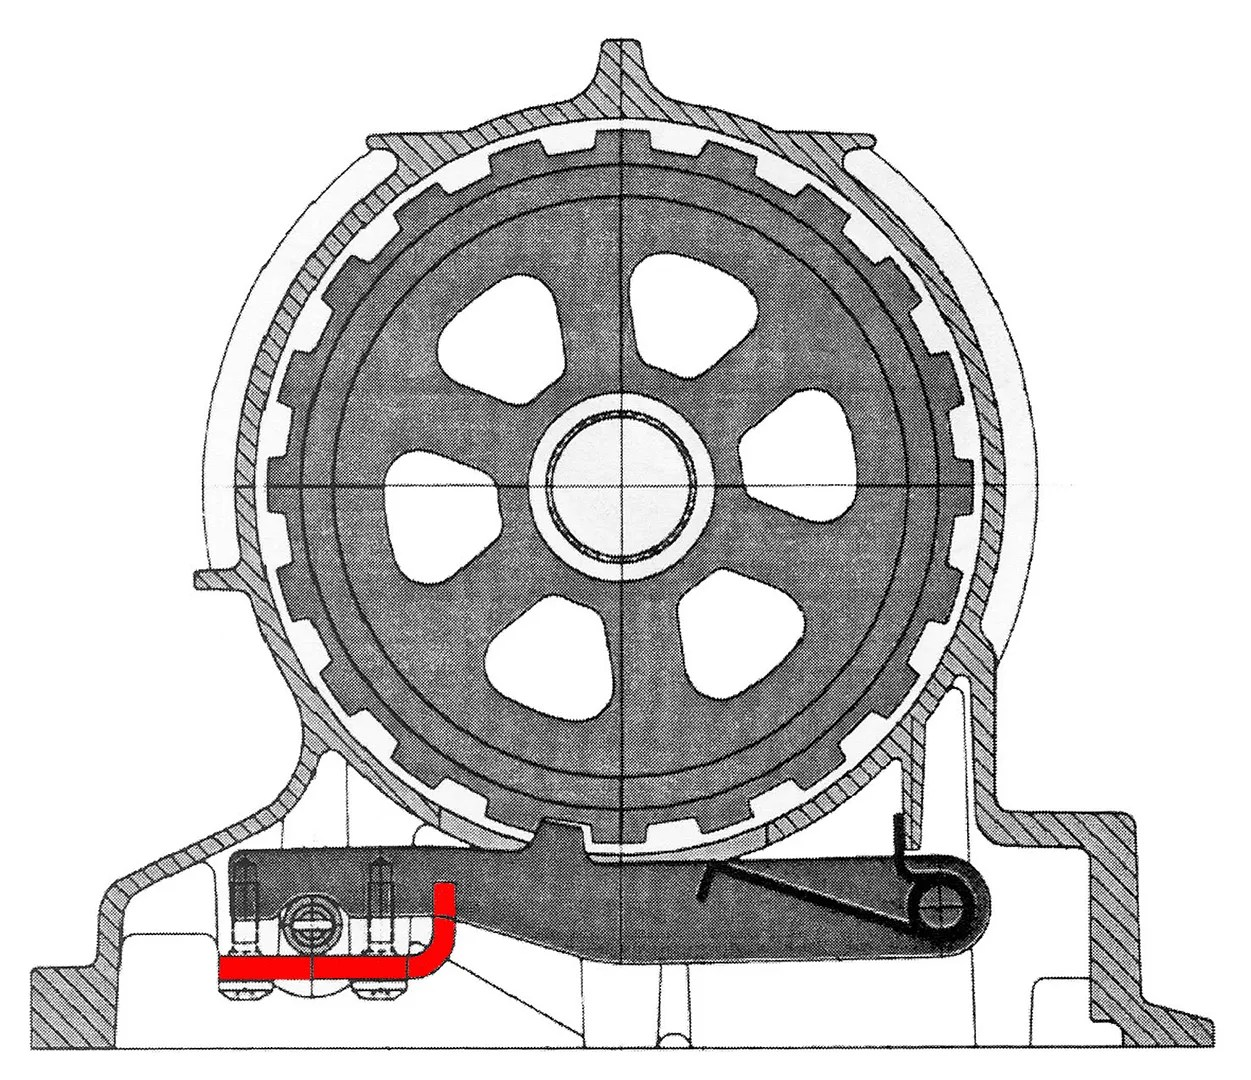 Rr Transmission Problem And Questions